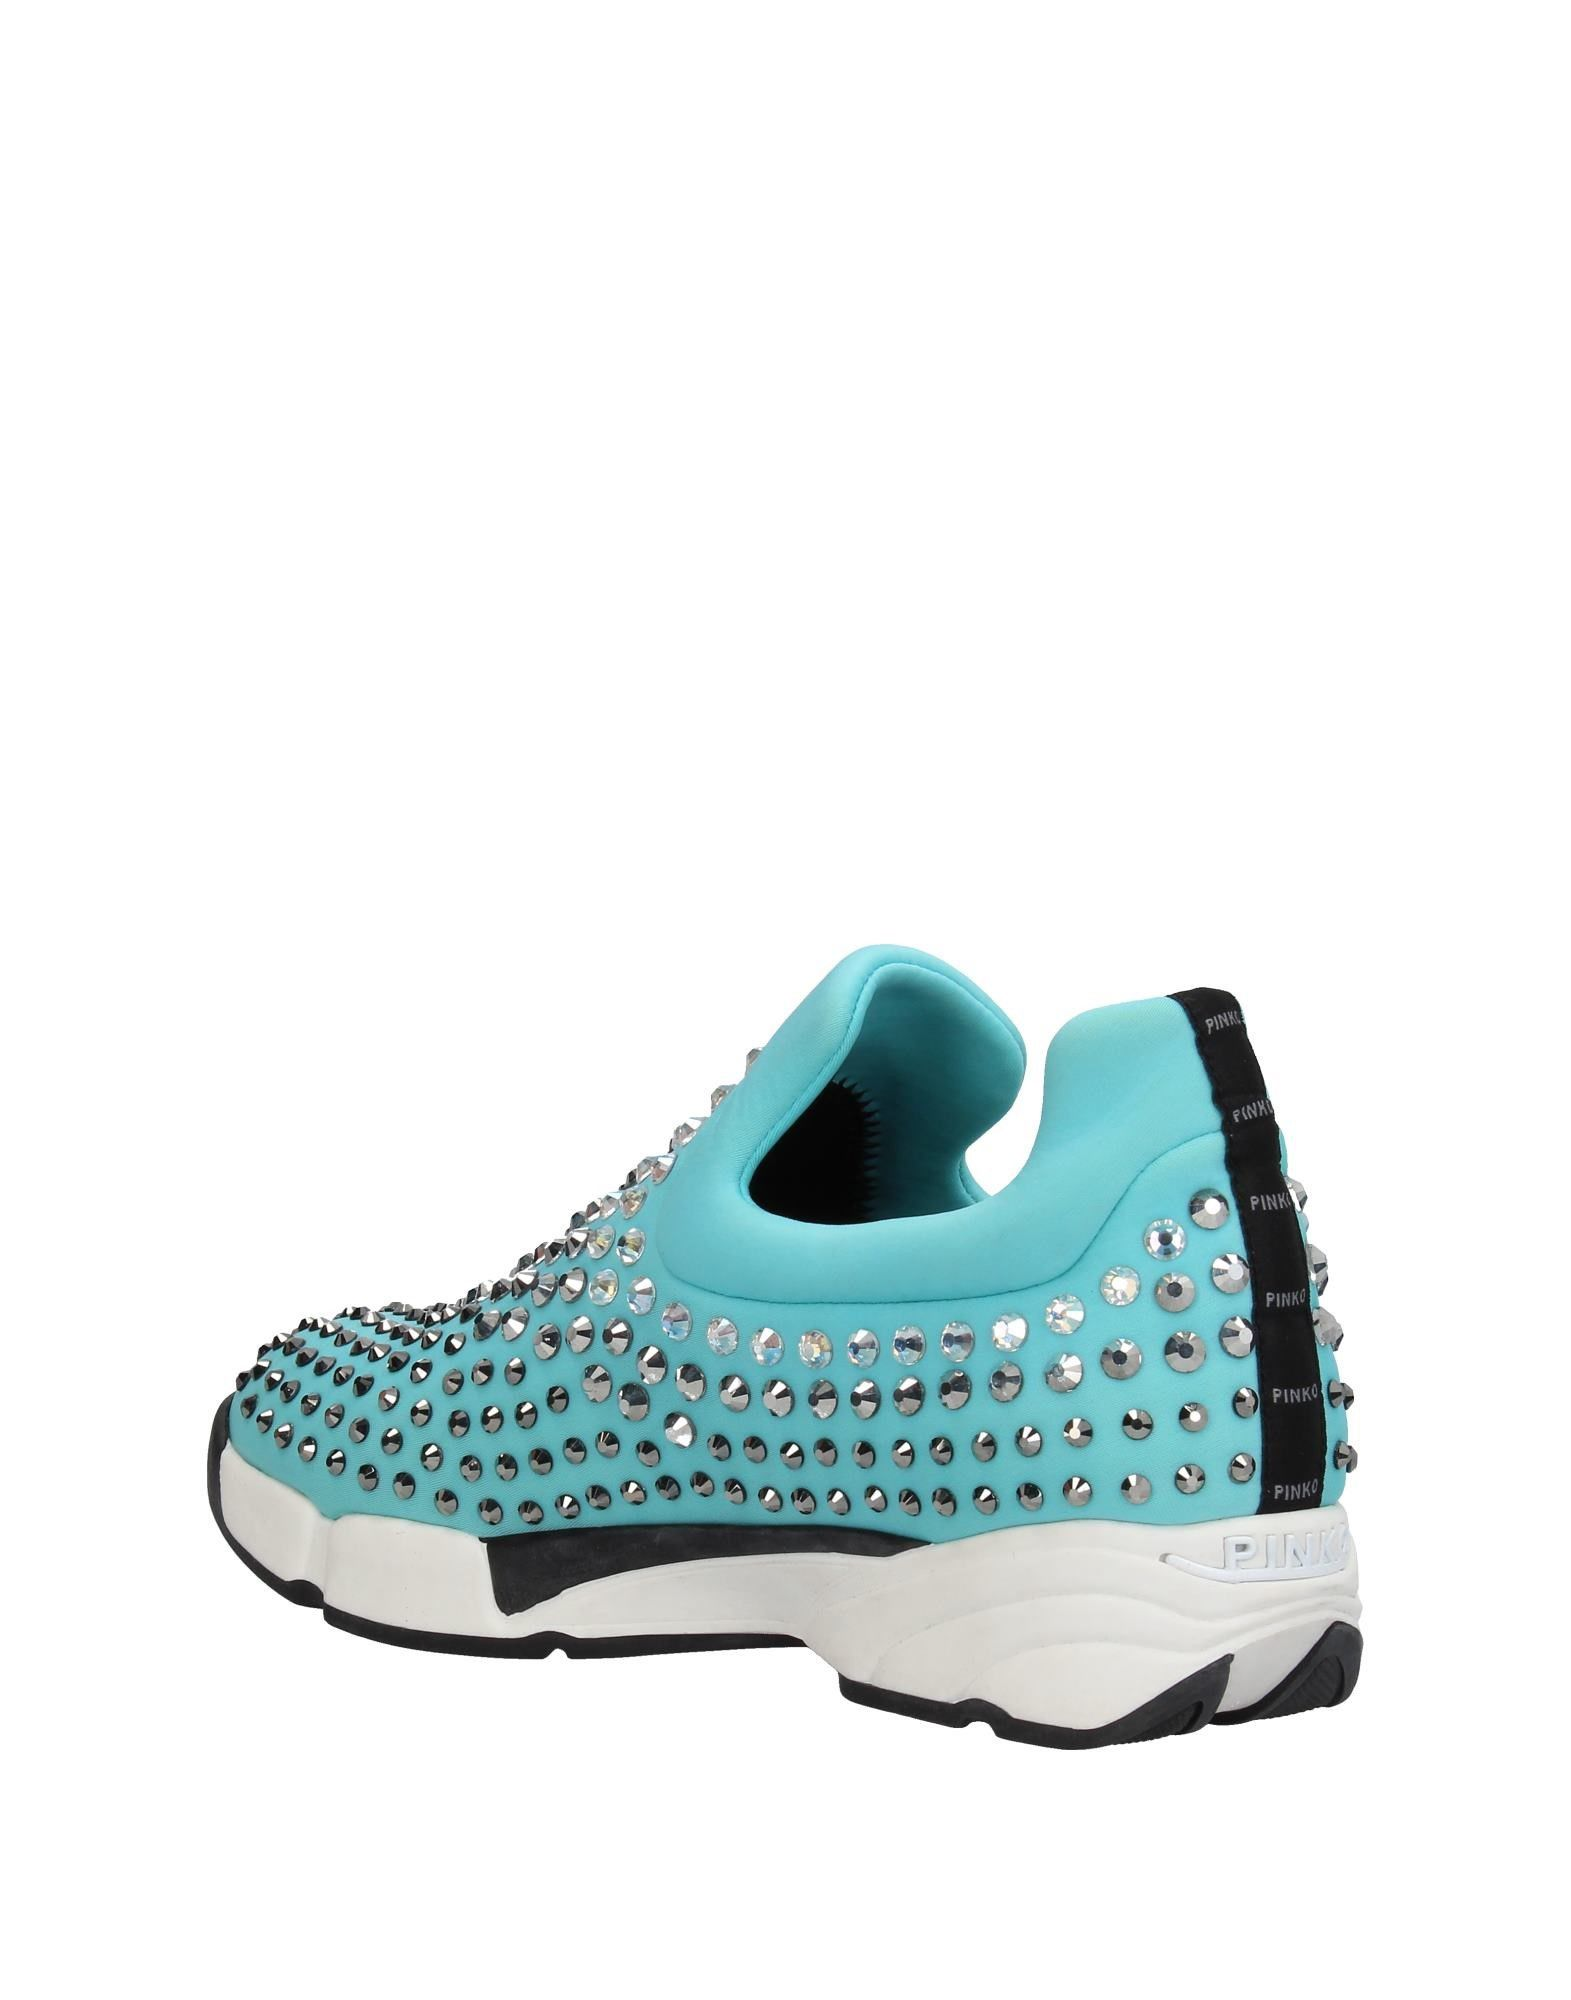 Pinko Sneakers Sneakers Sneakers - Women Pinko Sneakers online on  Canada - 11372109QE 142d03